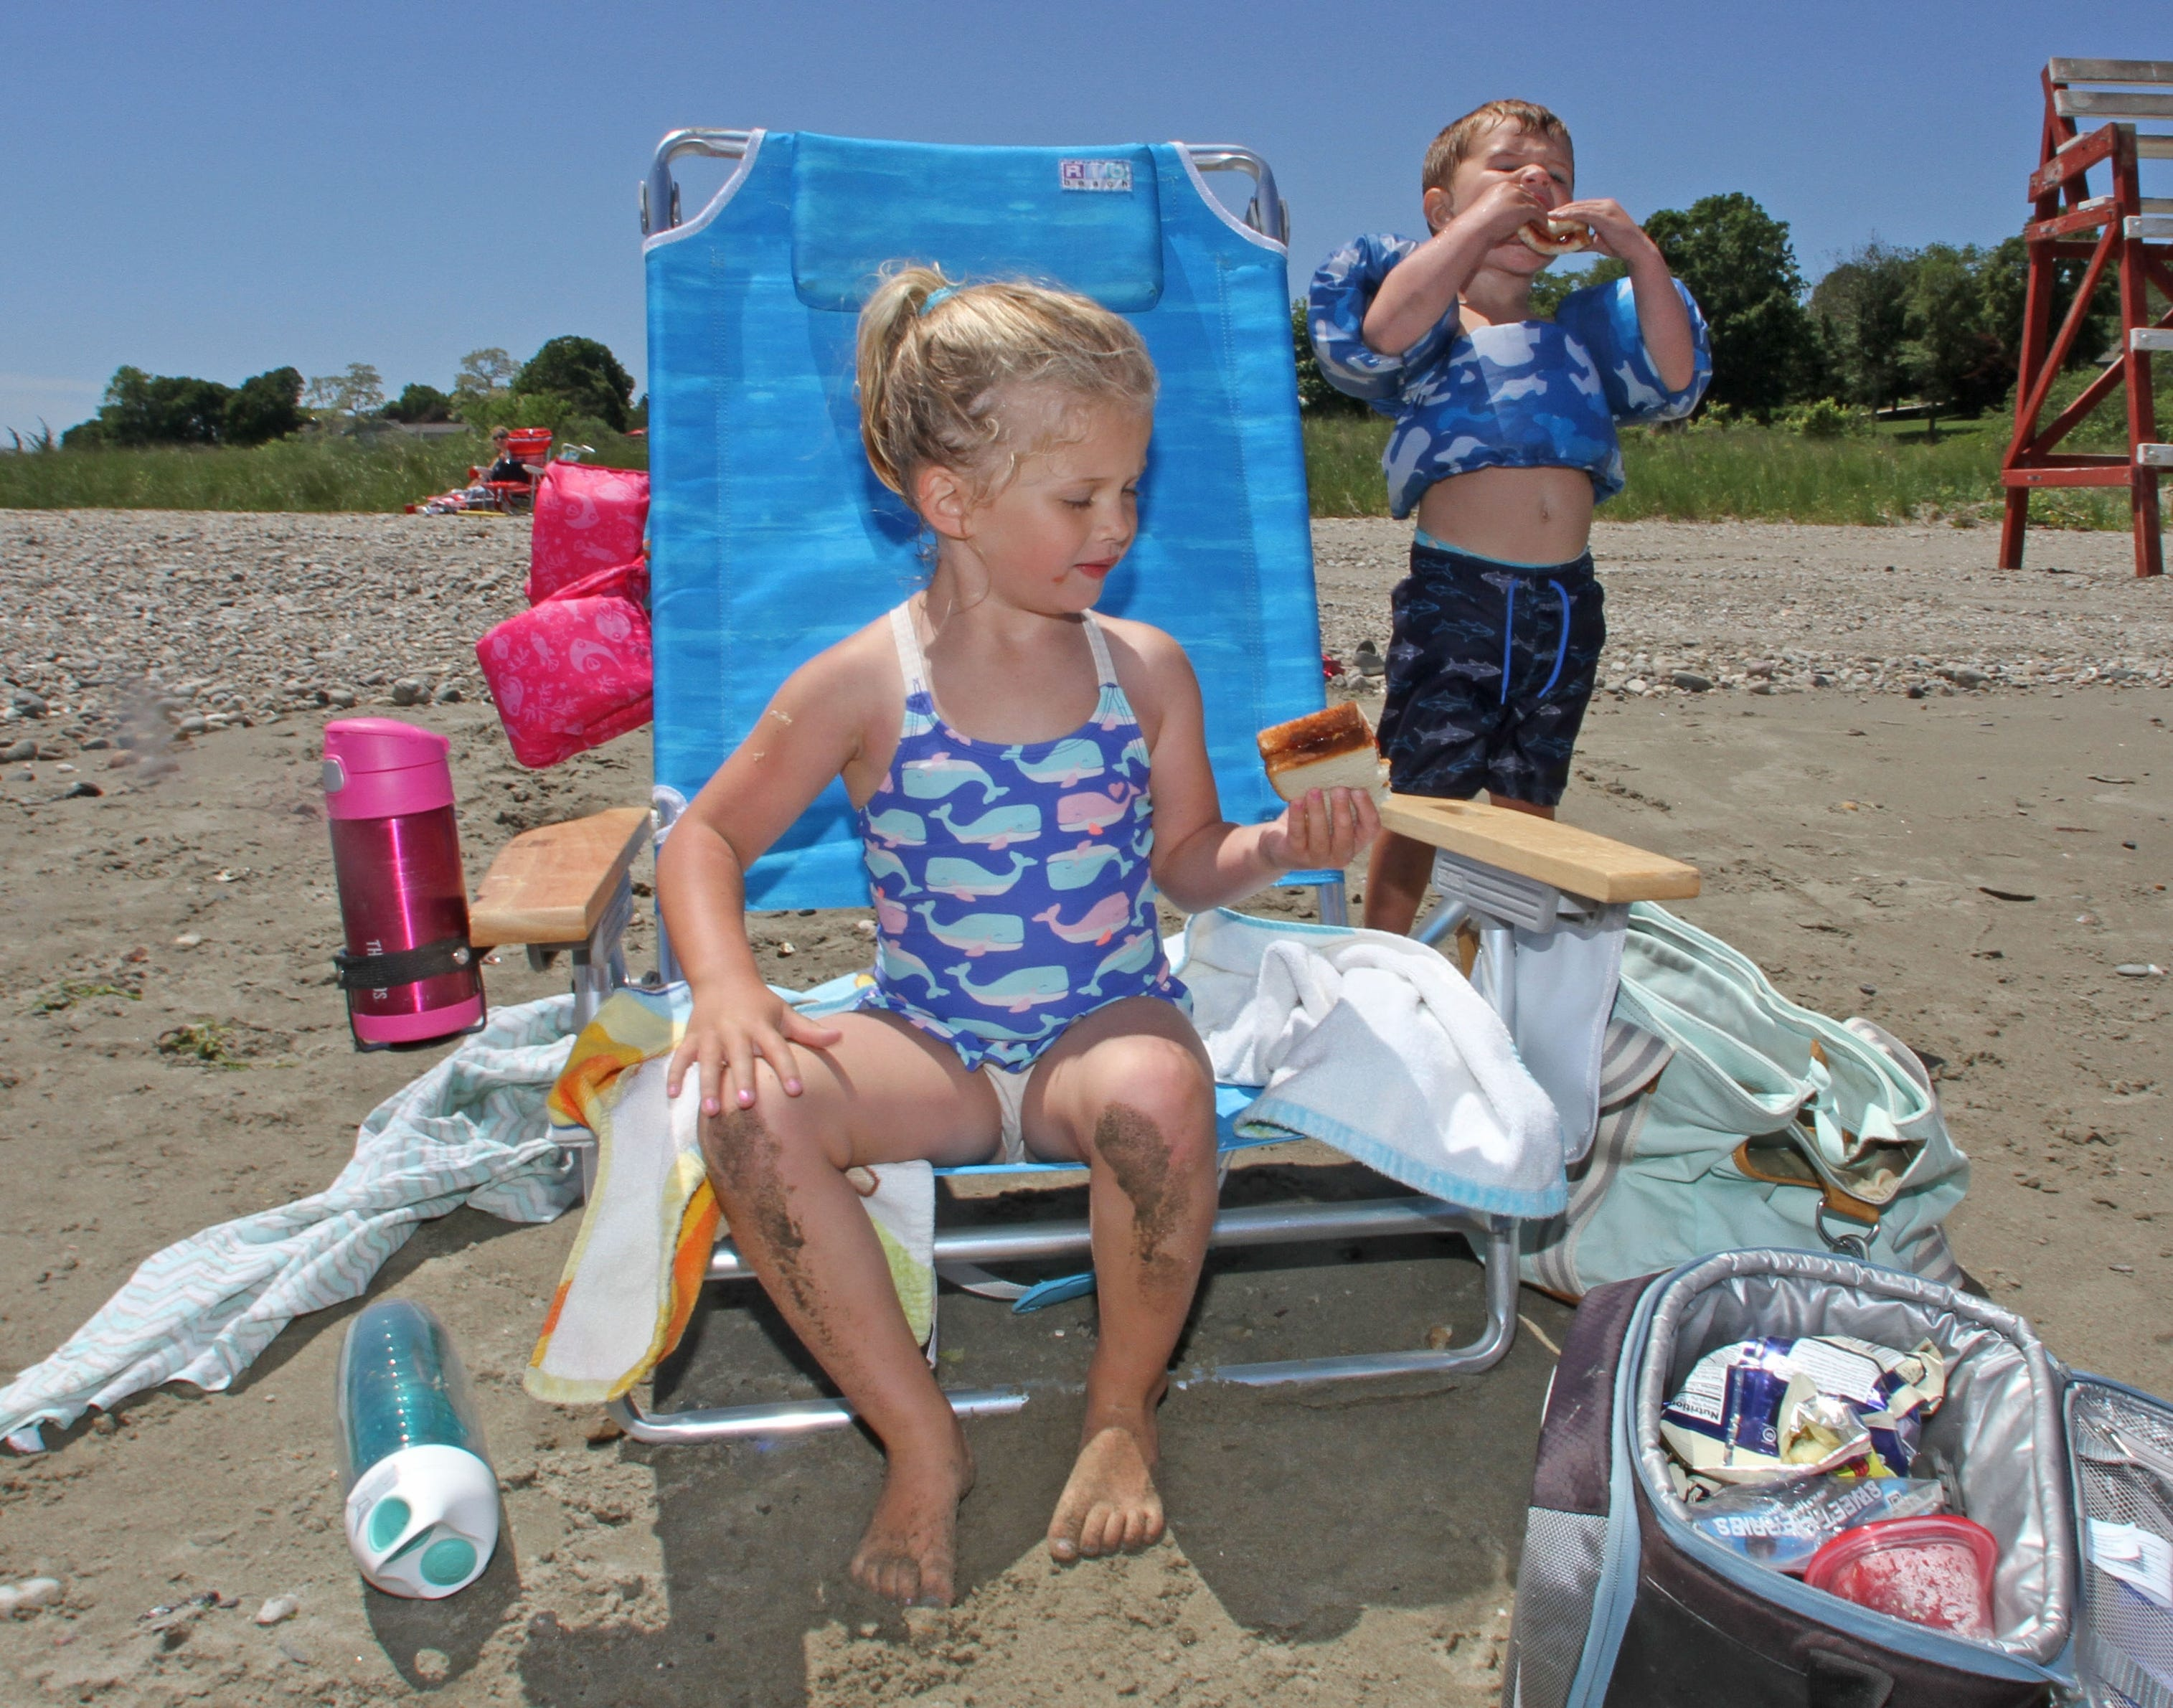 Ava, 4, and Trevor Siclari, 2, of East Providence, enjoy a peanut butter sandwich for lunch while at Sandy Point Beach, along the Sakonnet River, Portsmouth. Their mother Melissa Siclari likes the quiet beach.